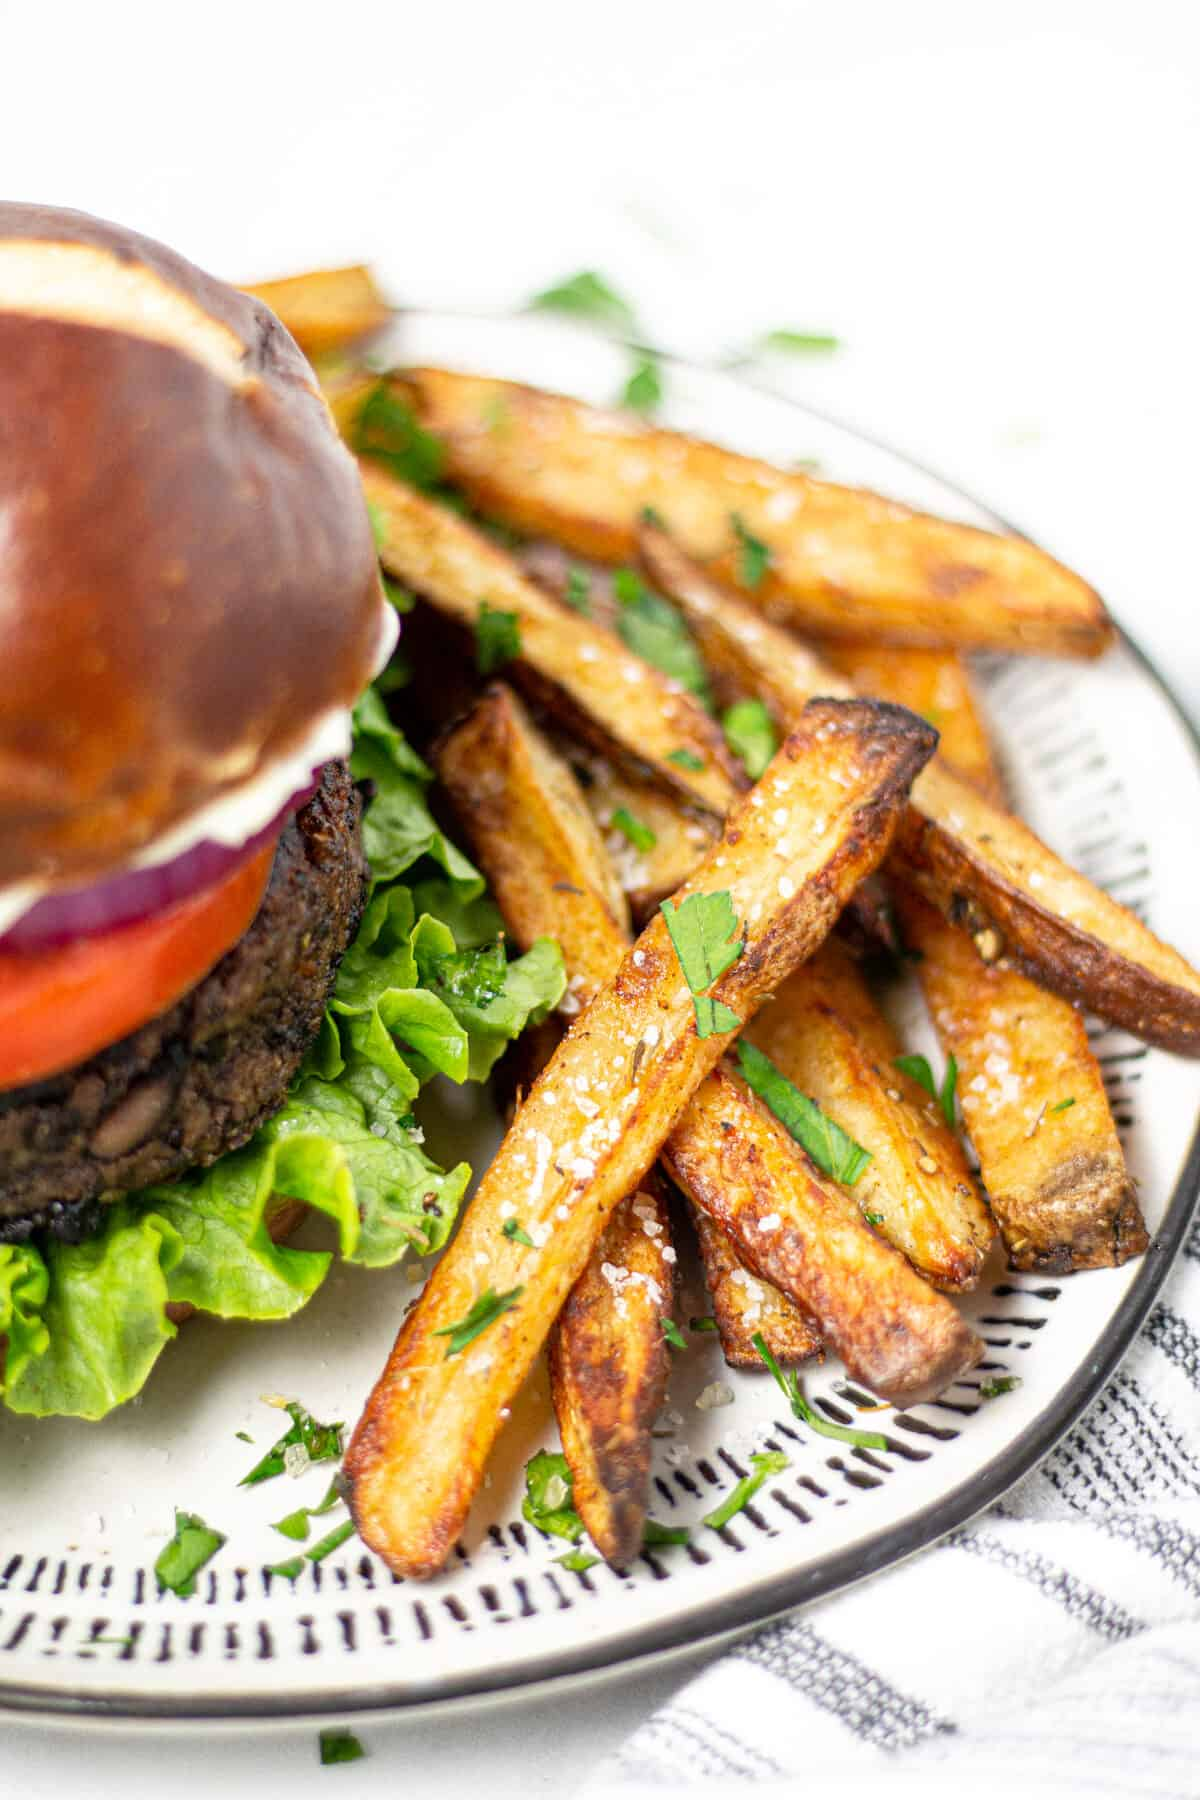 Plate with a black bean burger and baked french fries on it